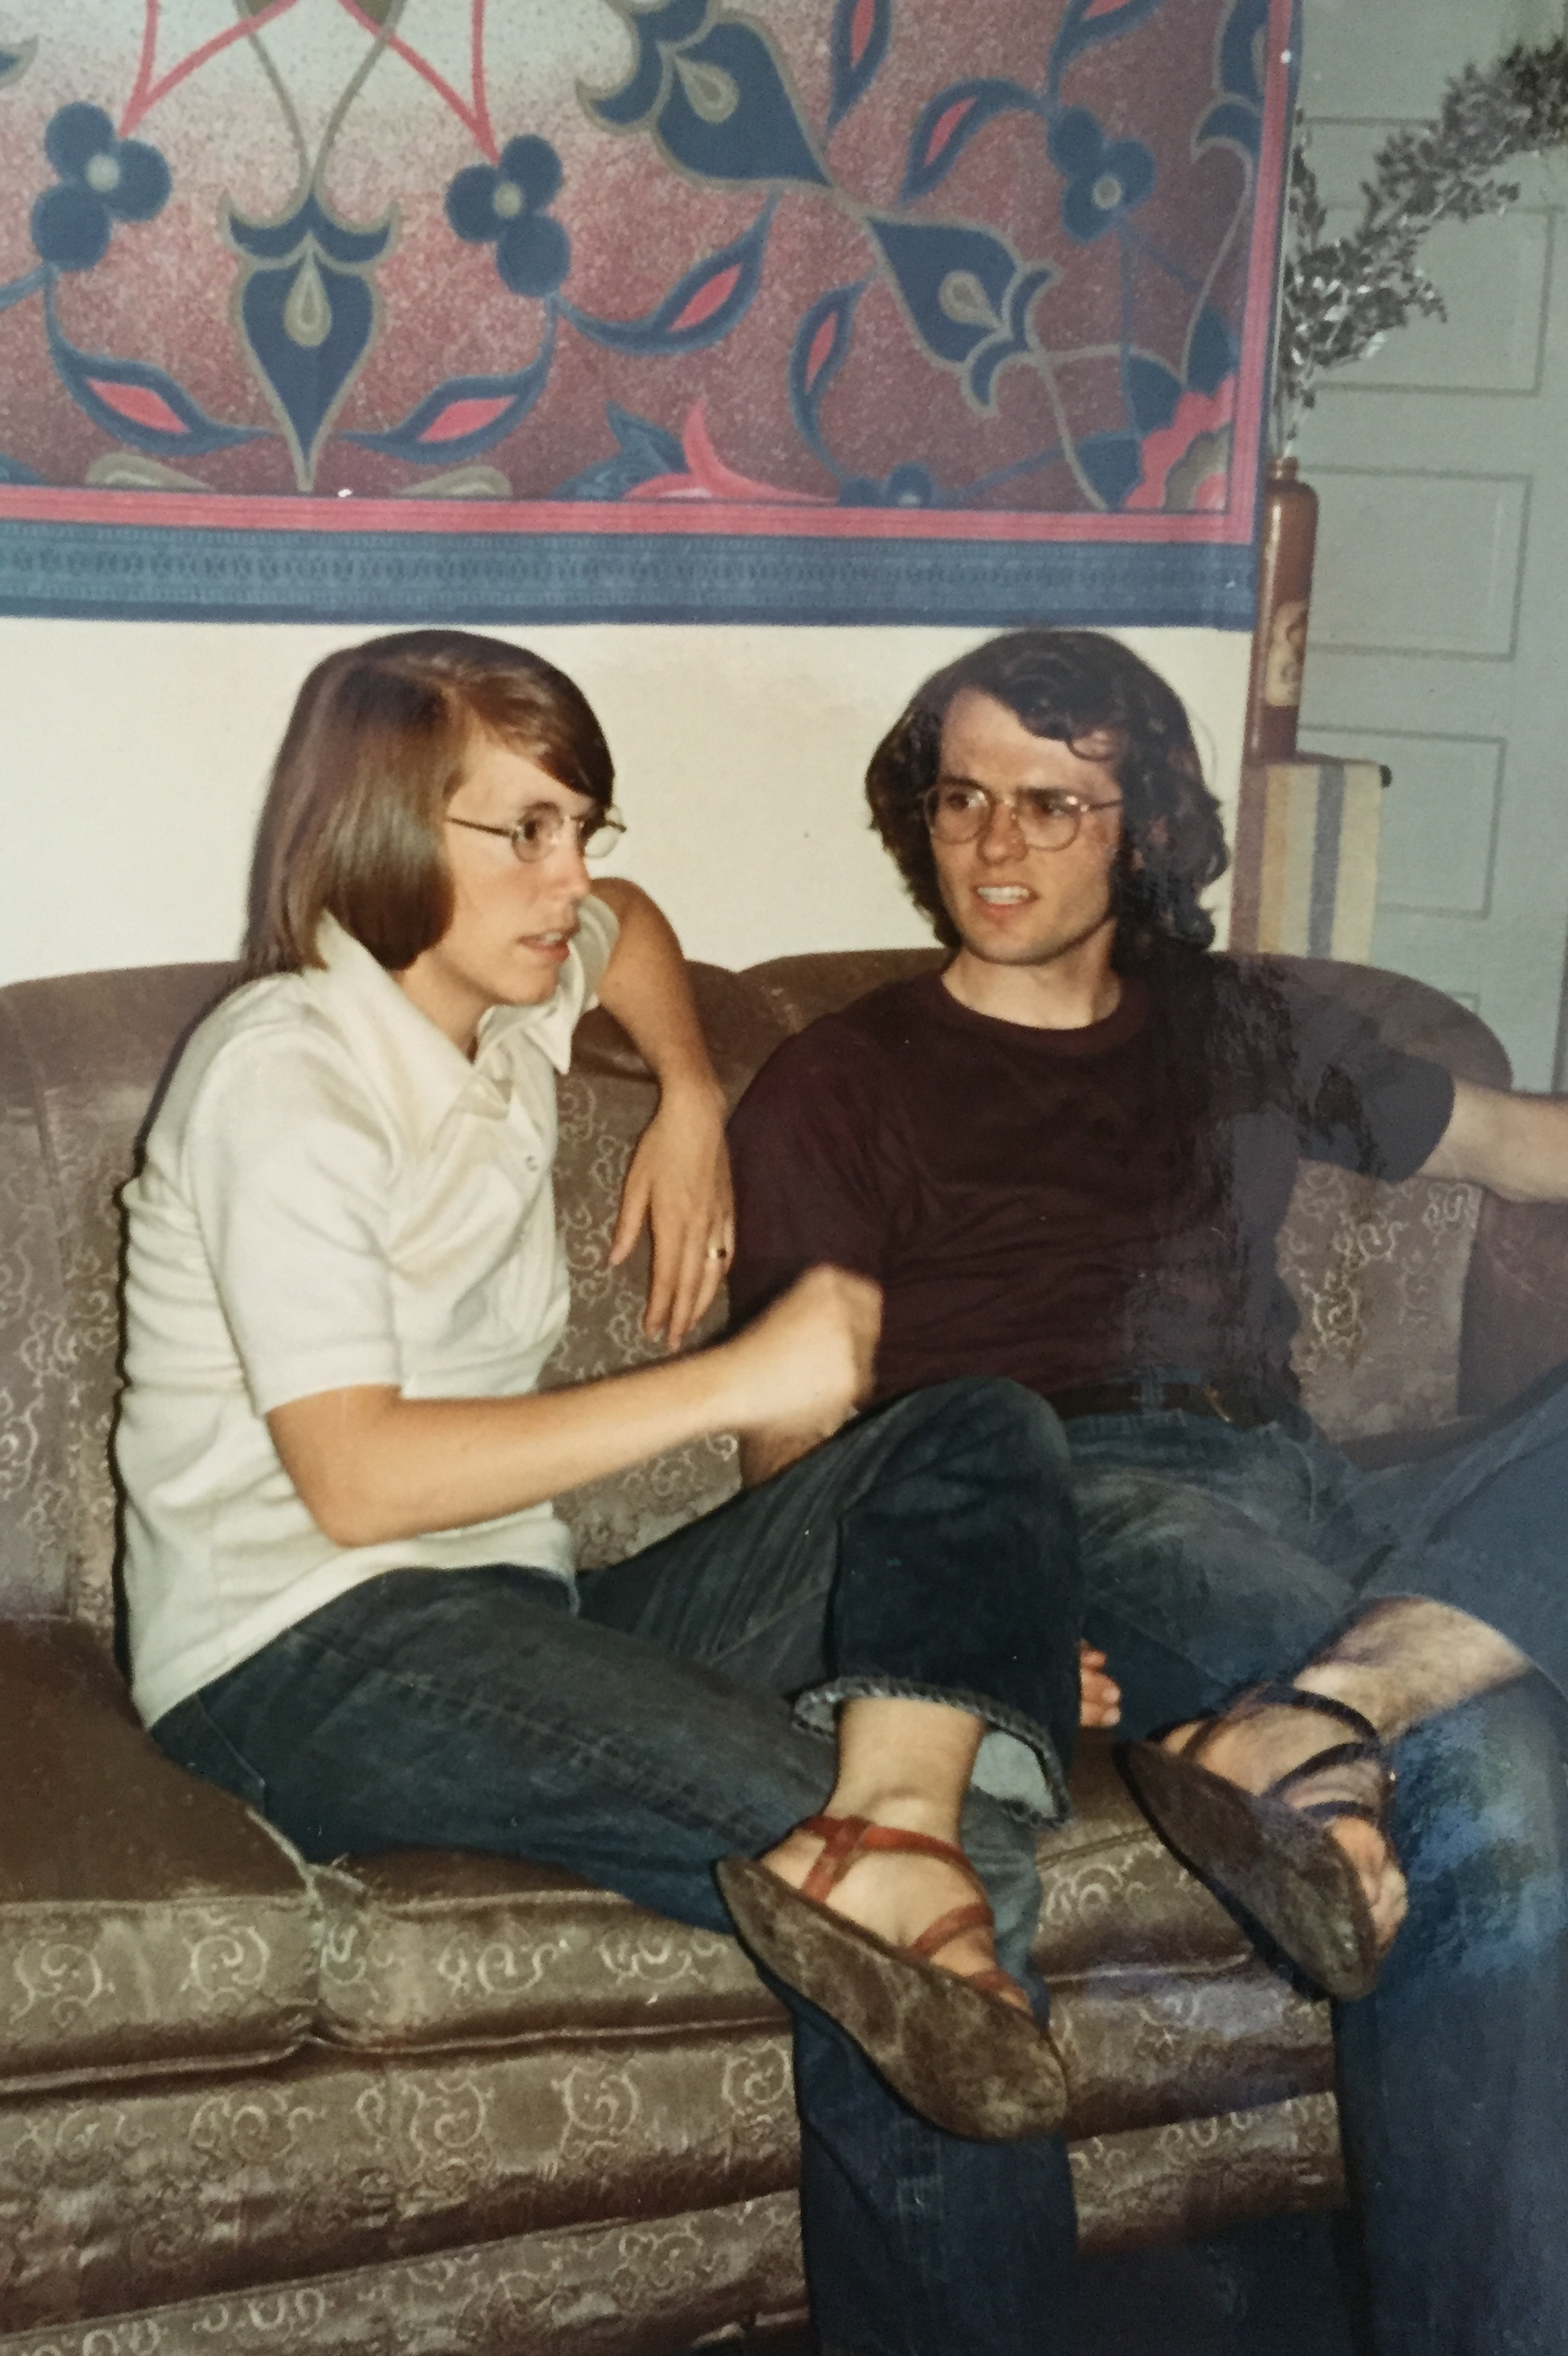 Mom & Dad as earnest 70s intellectuals